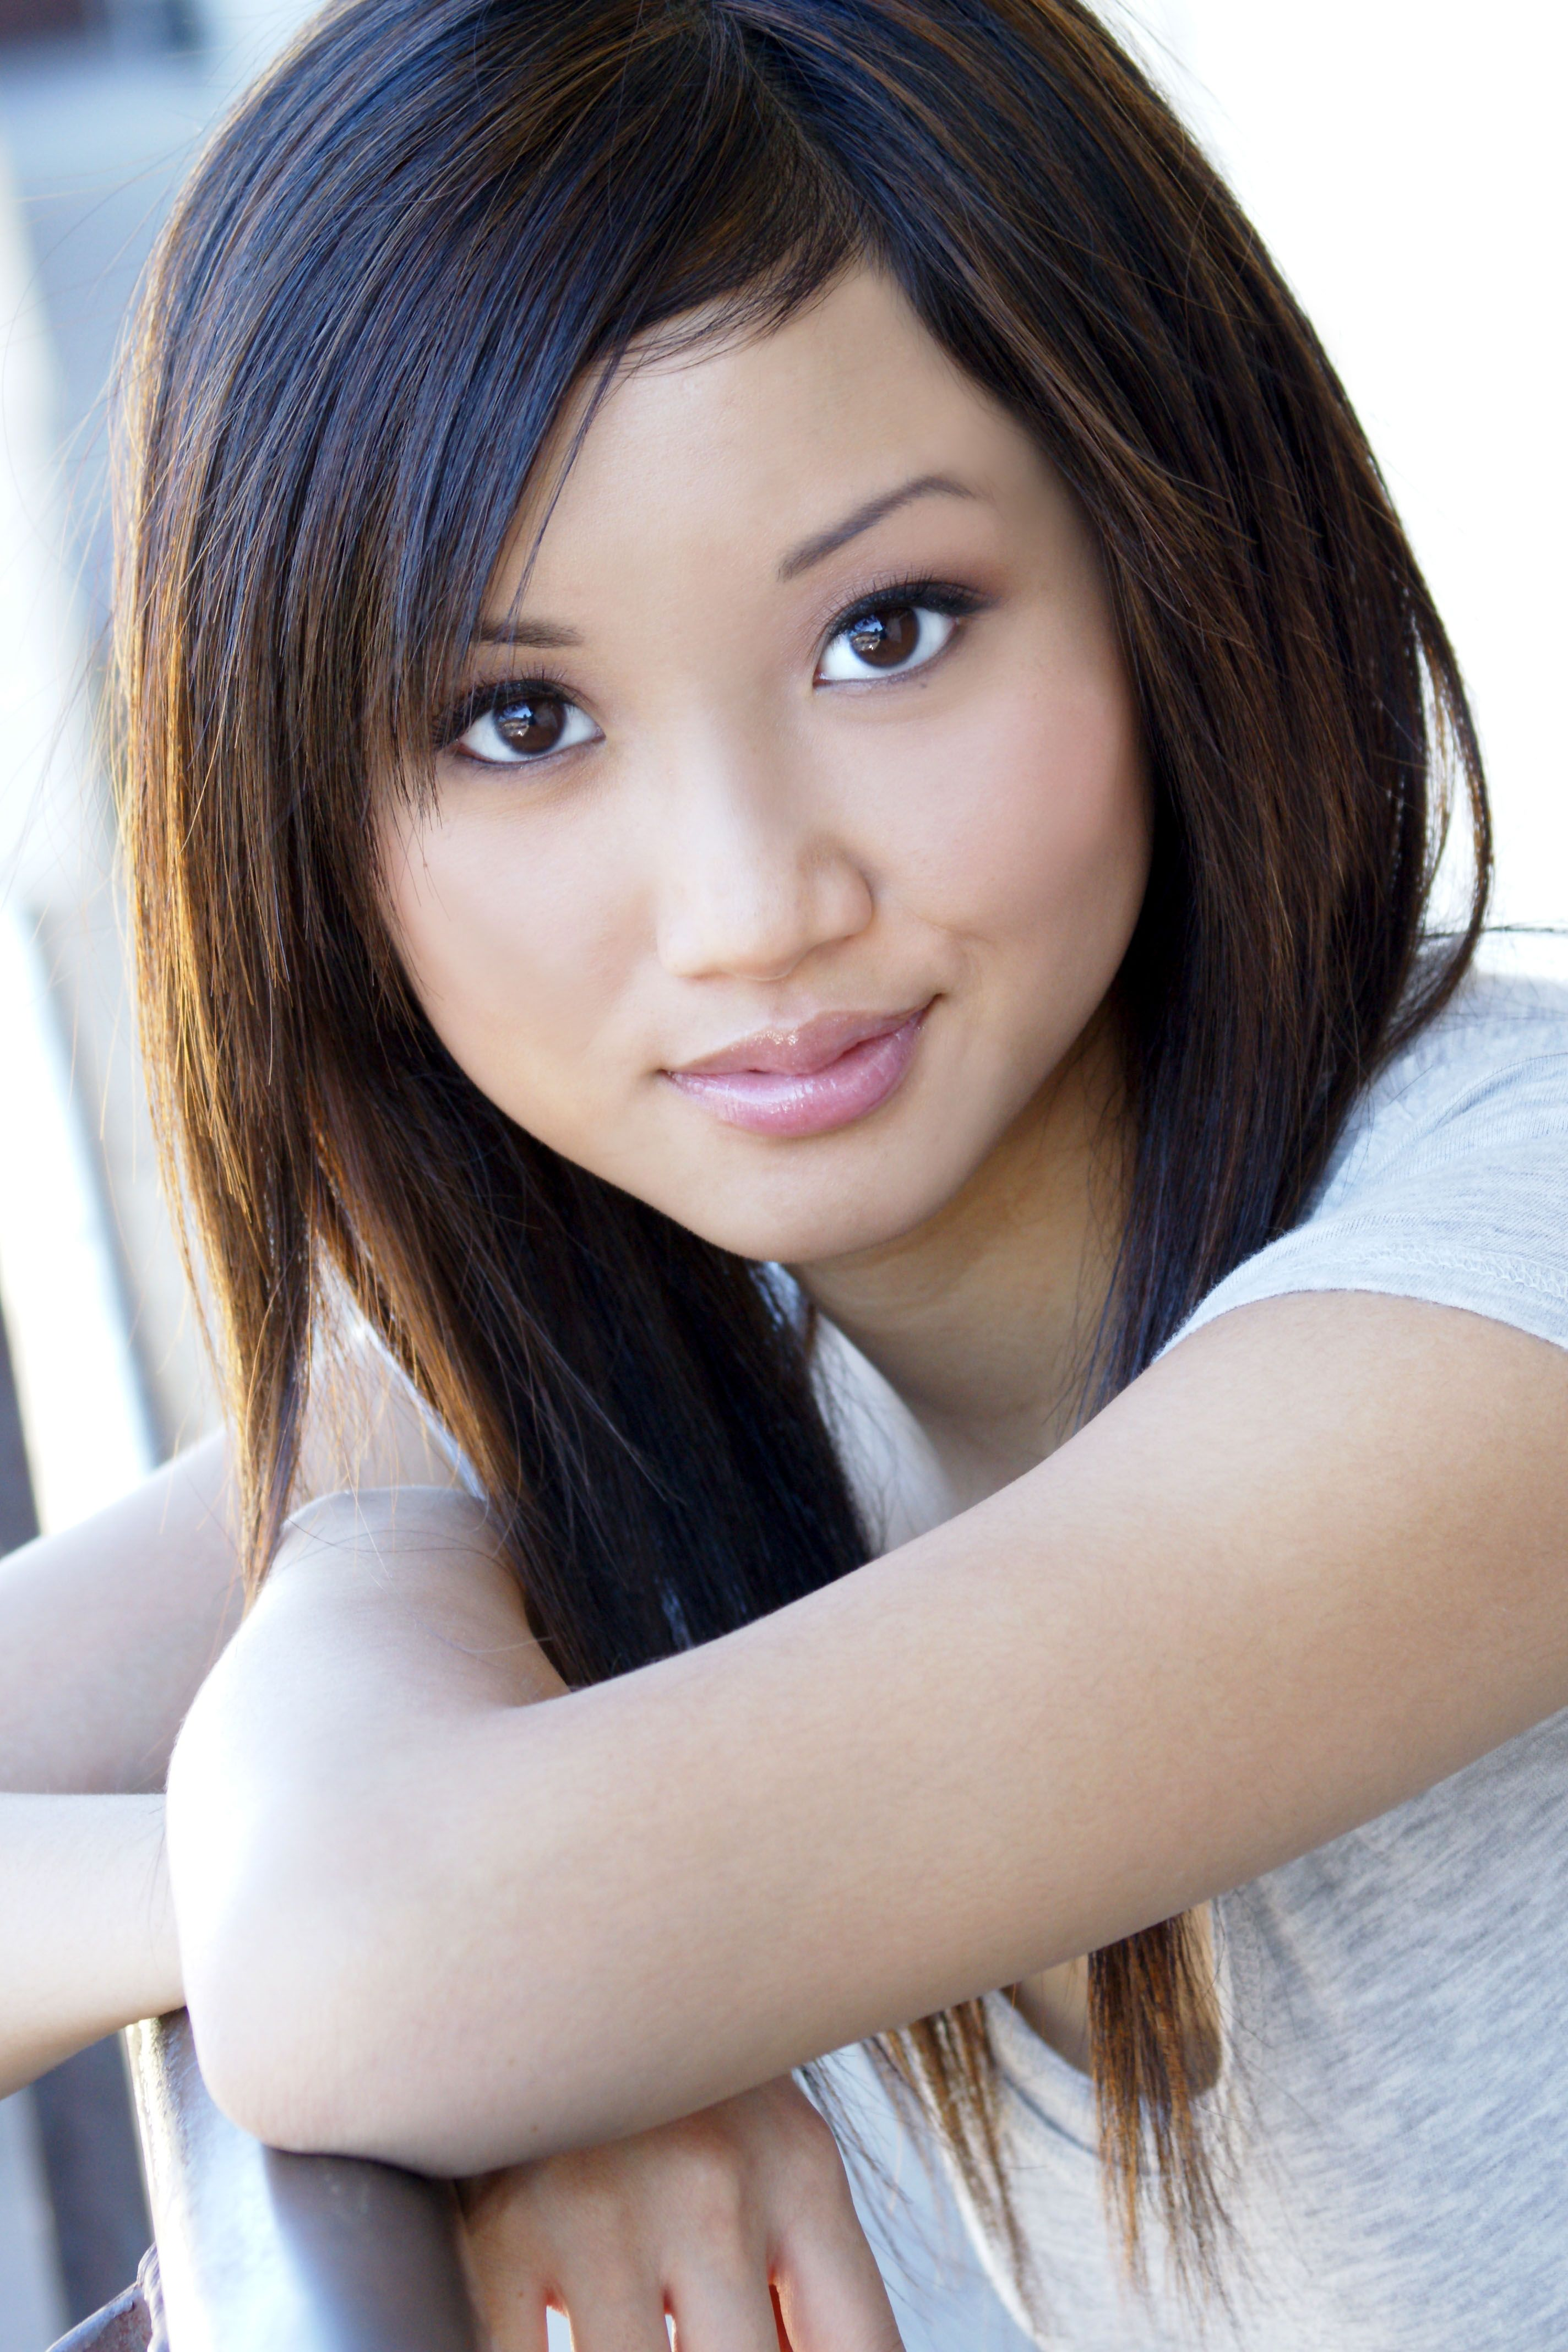 Brenda song actress always love her hairstyles my favourite